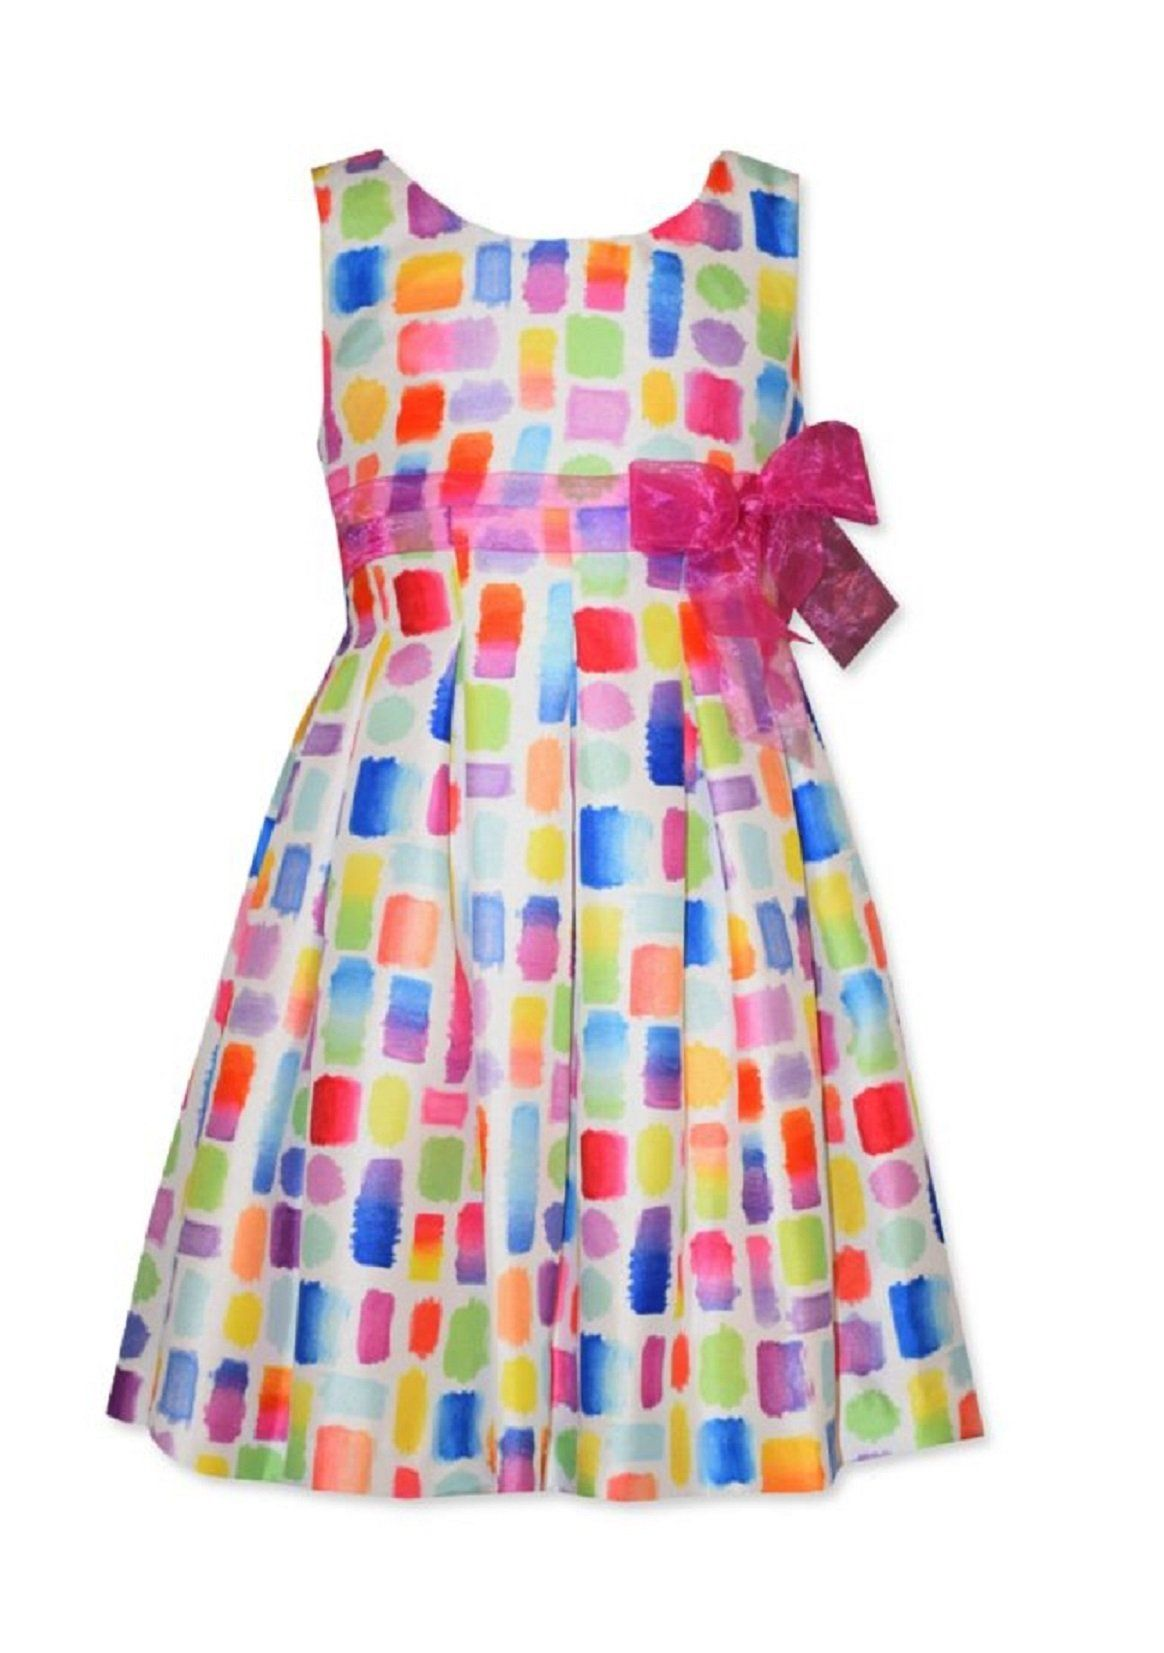 Bonnie Jean Multi Easter Spring Summer Dress Girls 3t Multi She Will Be So Sweet At Any Special Oc Girls Dresses Summer Toddler Girl Dresses Summer Dresses [ 1653 x 1164 Pixel ]